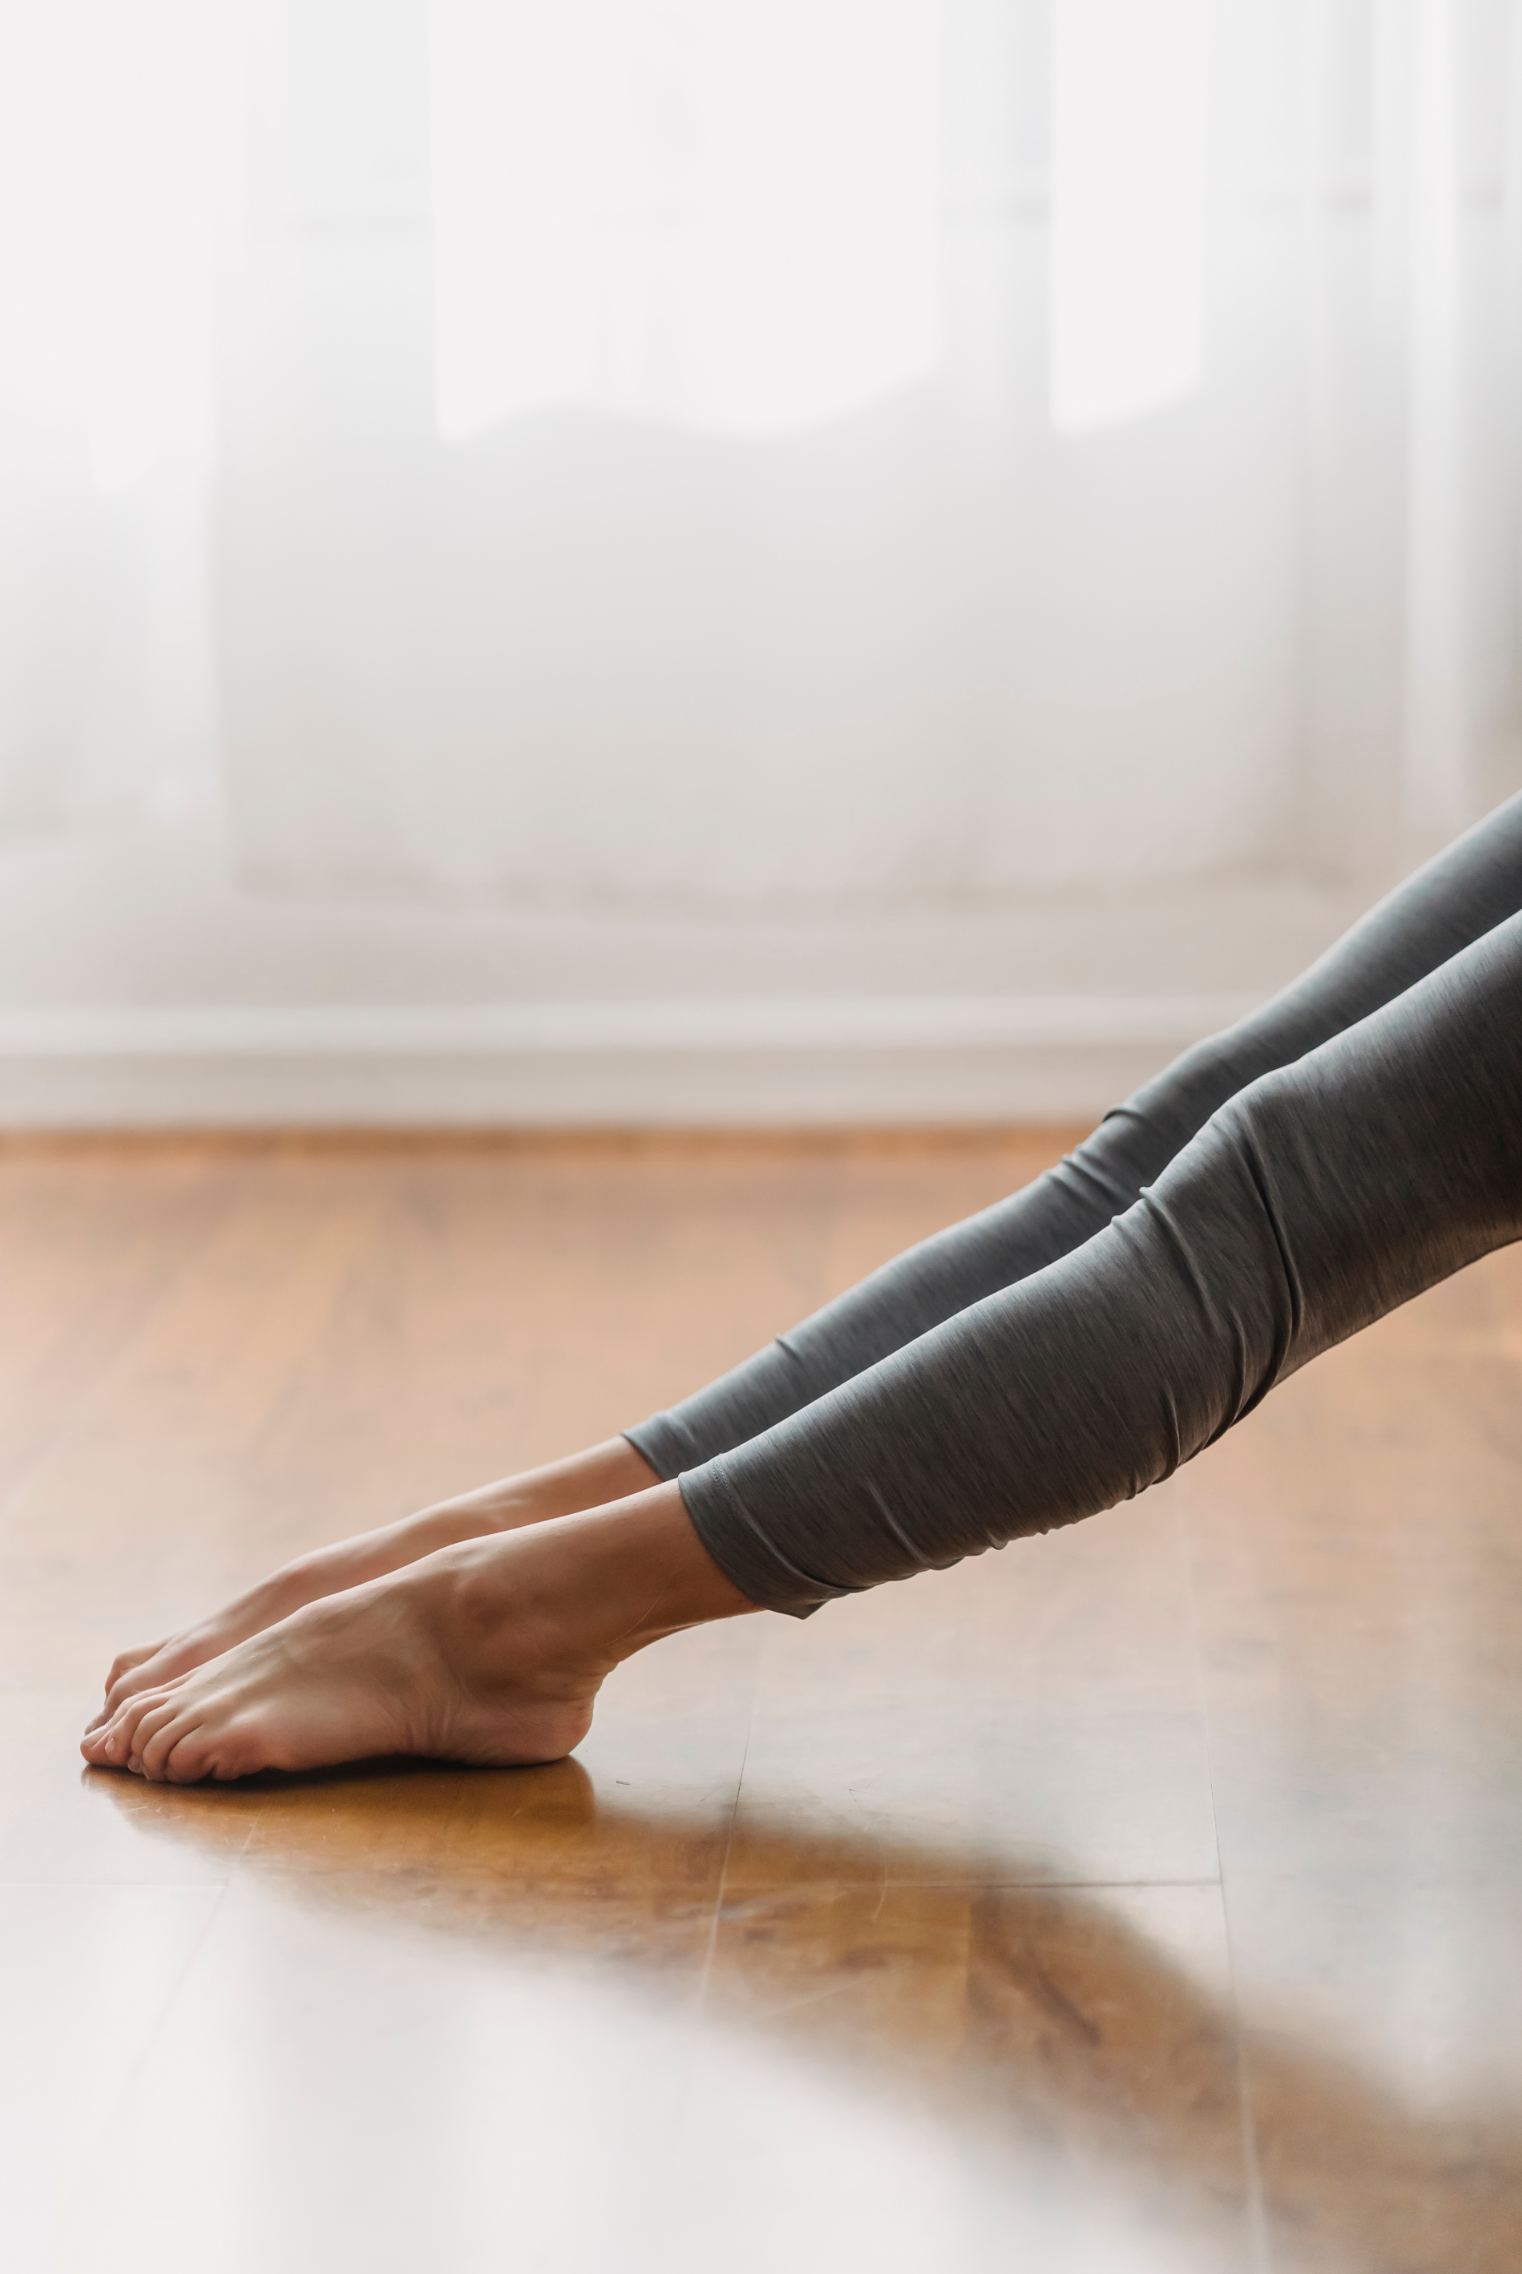 stretching can help prevent painful shin splints